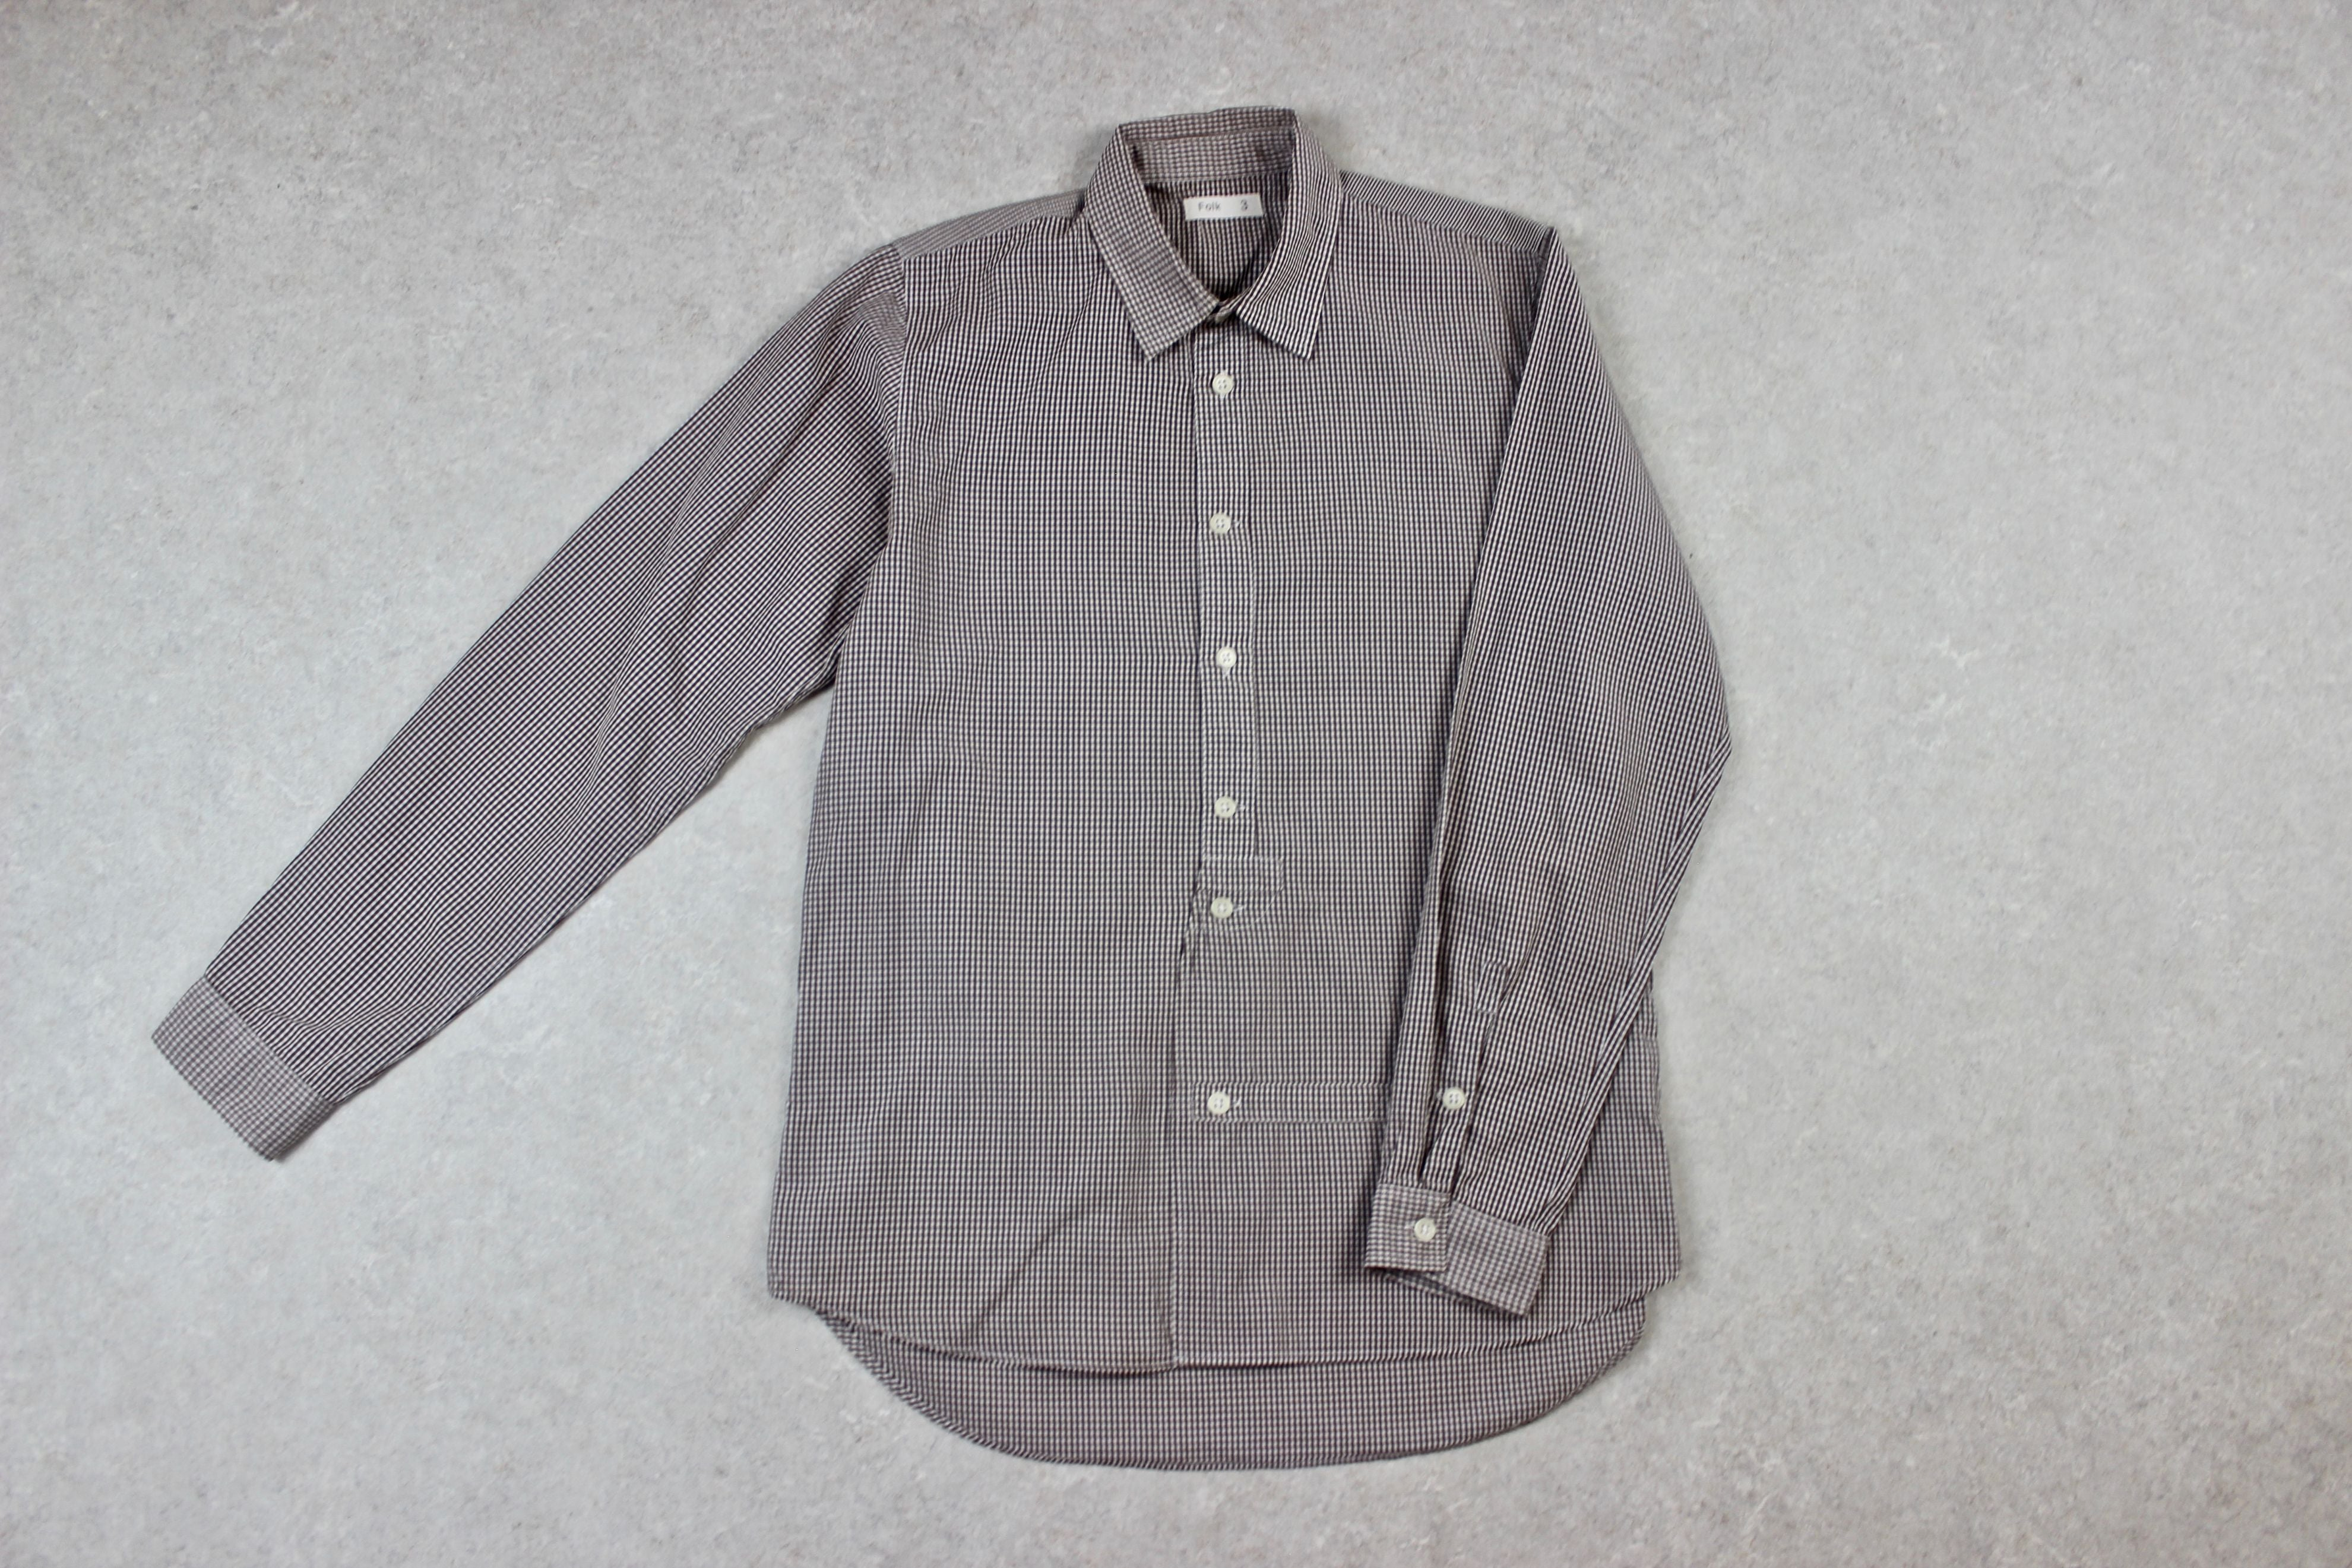 Folk - Shirt - Brown/White Gingham Check - 3/Medium